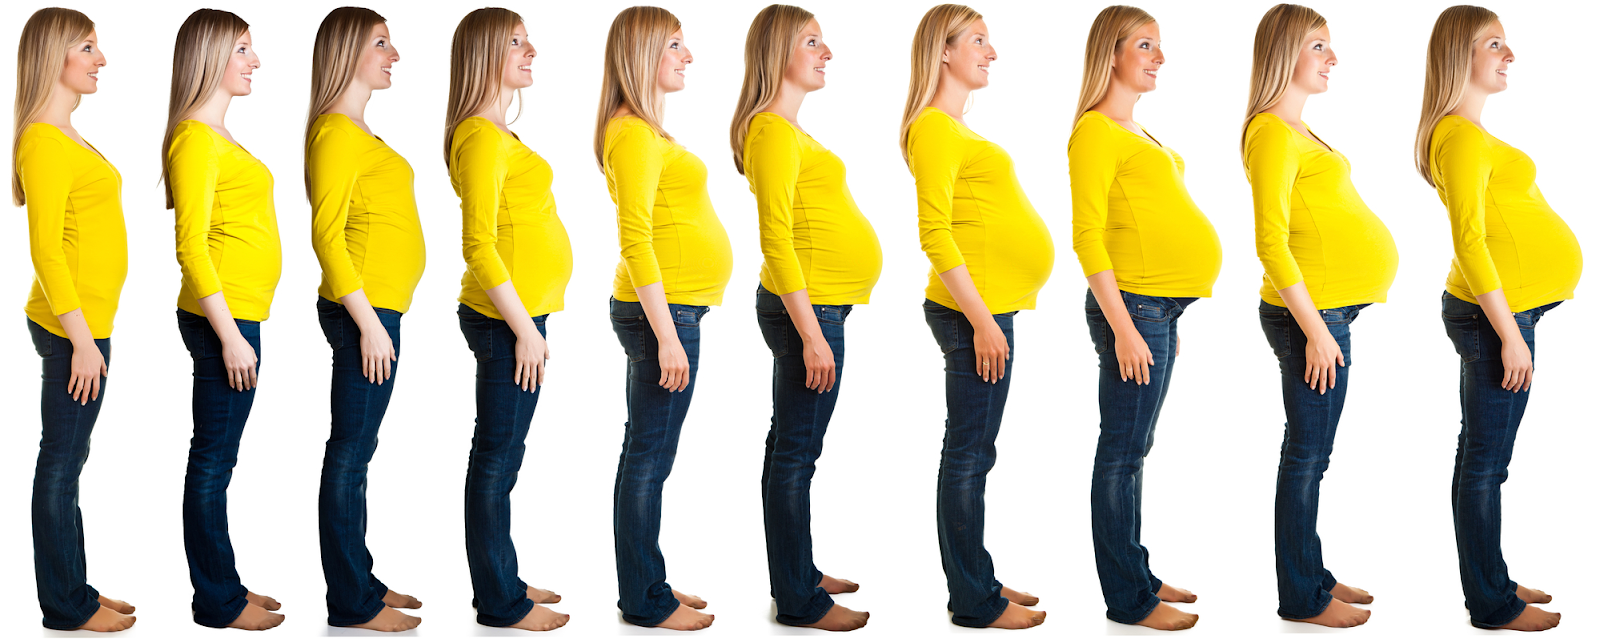 Timeline of a woman during pregnancy